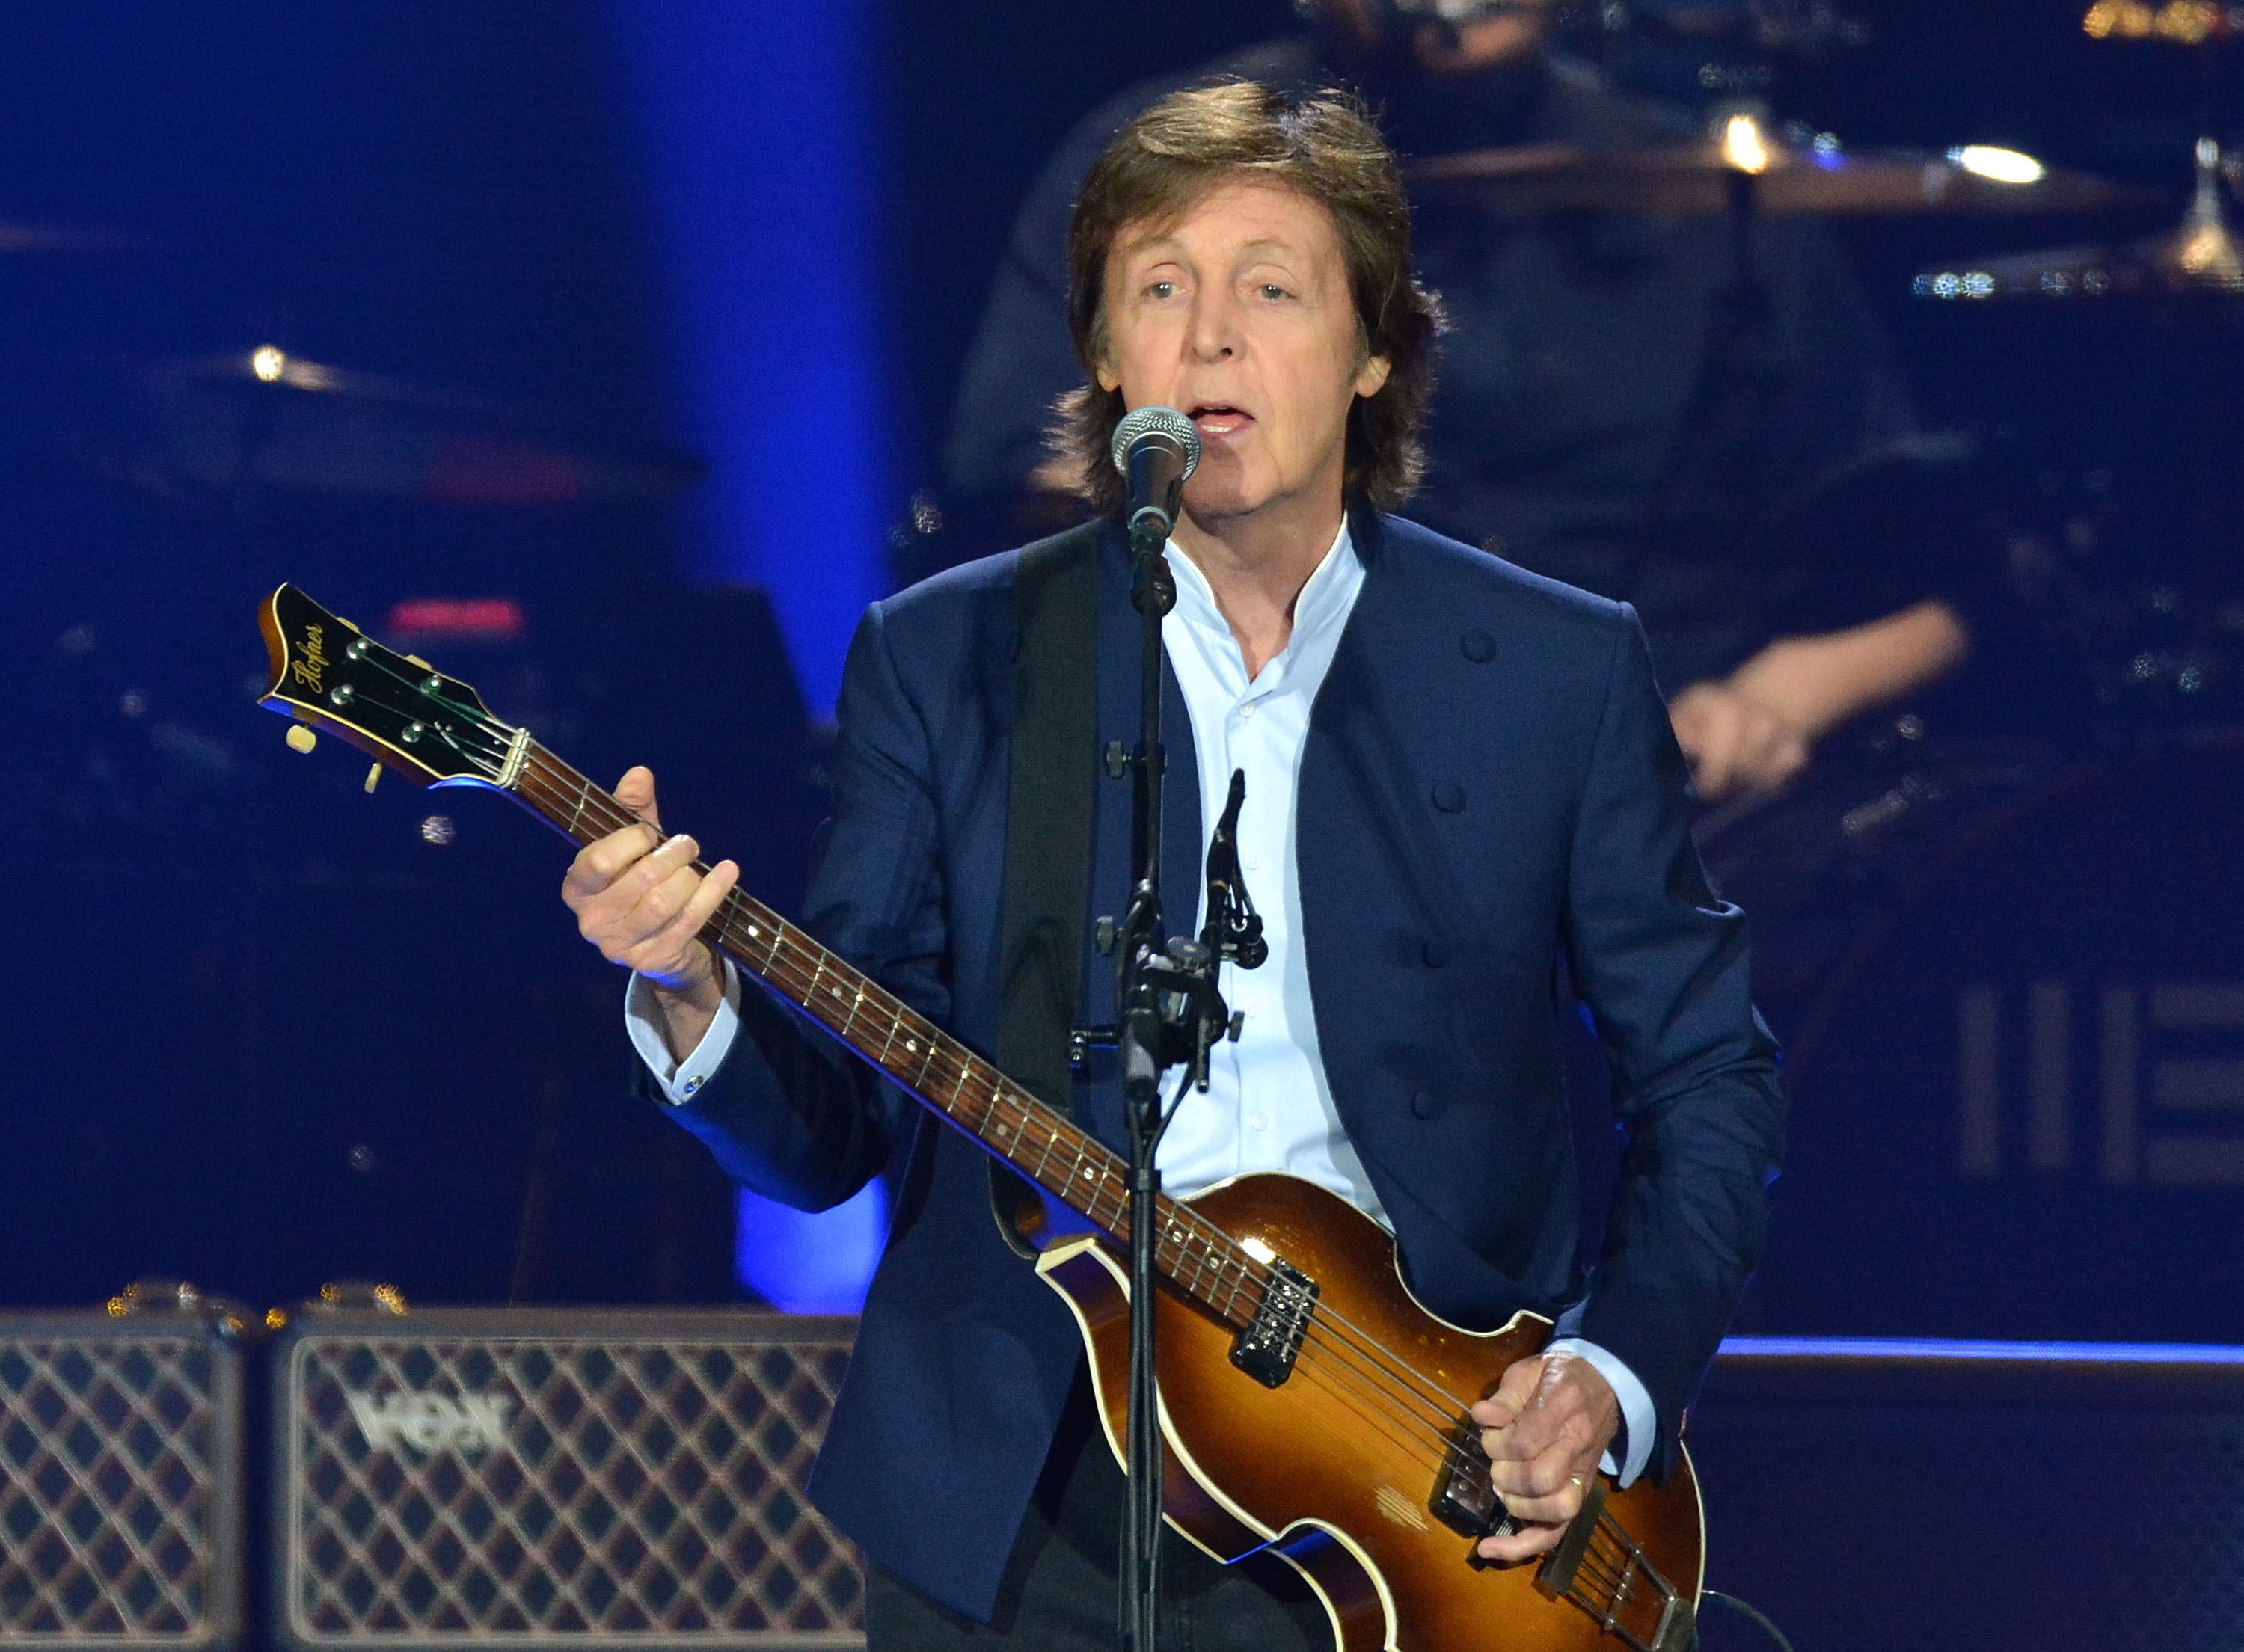 Paul McCartney Performs At O2 Arena In London